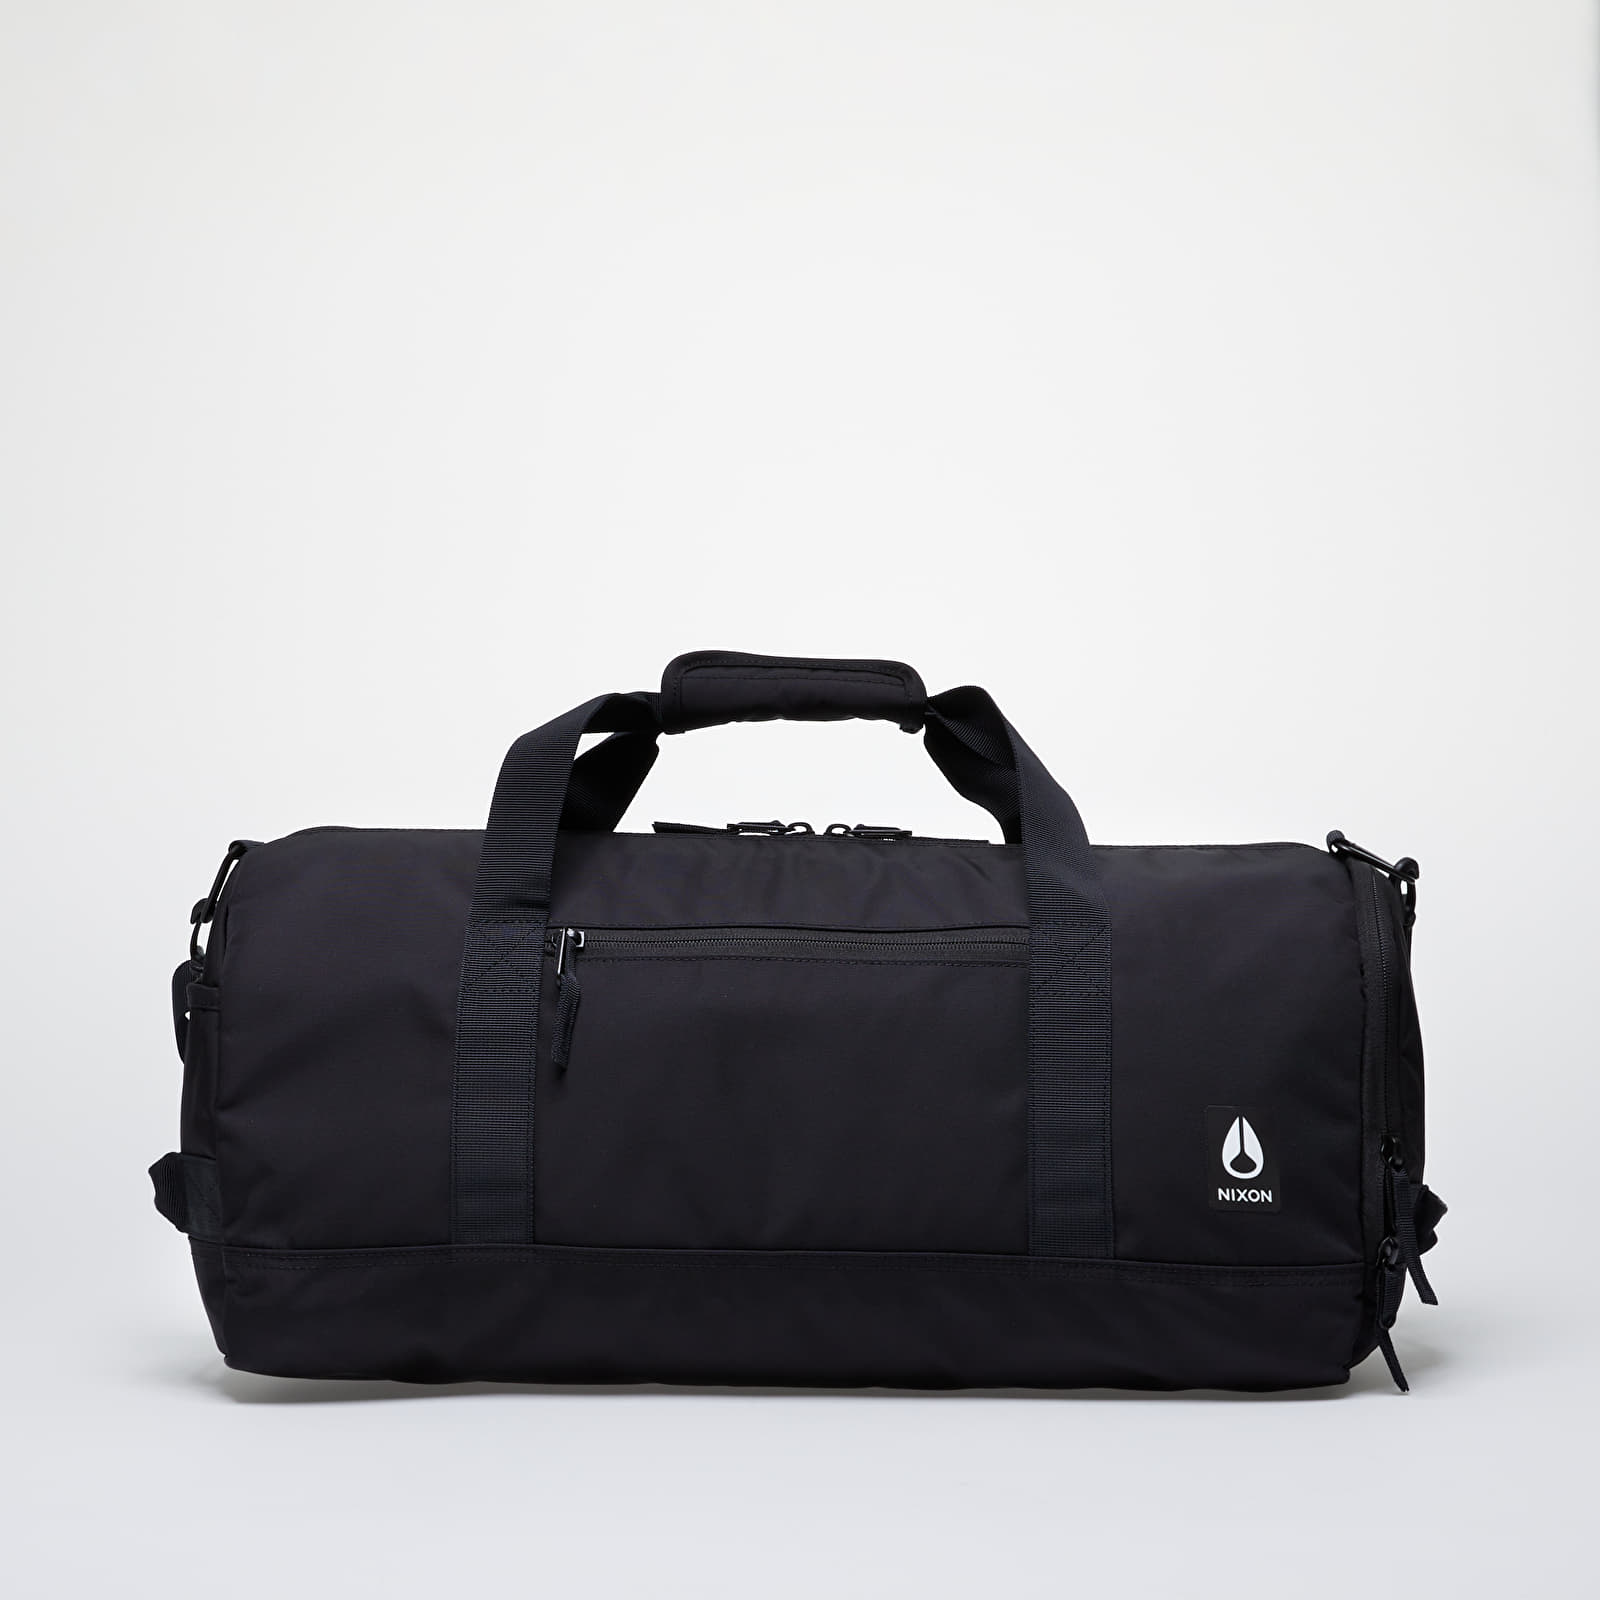 Nixon Pipes Duffle Bag